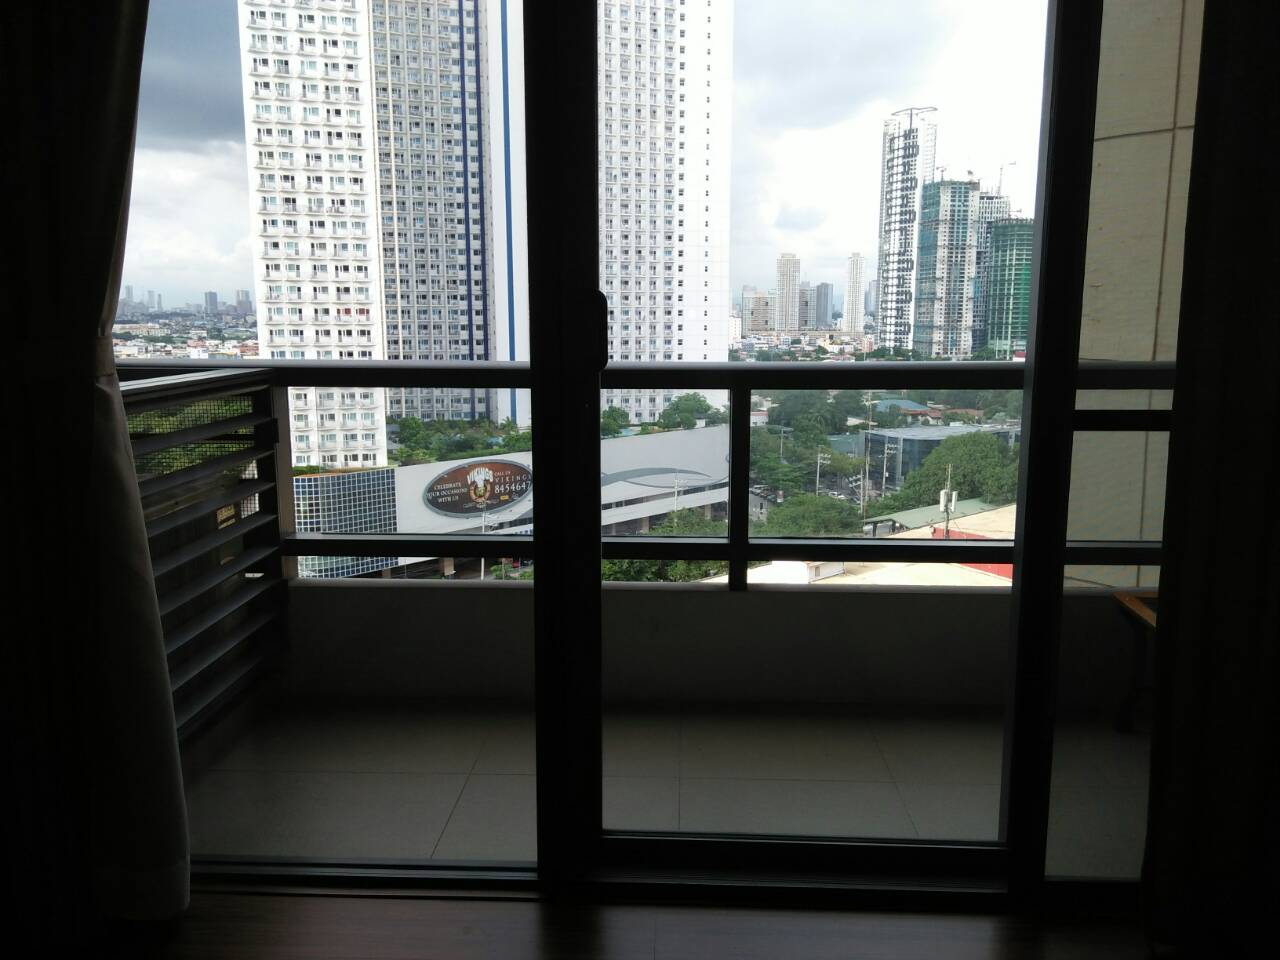 2 Bedrooms Condo For Sale Shang Salcedo Place Makati City The Real Estate Group Philippines